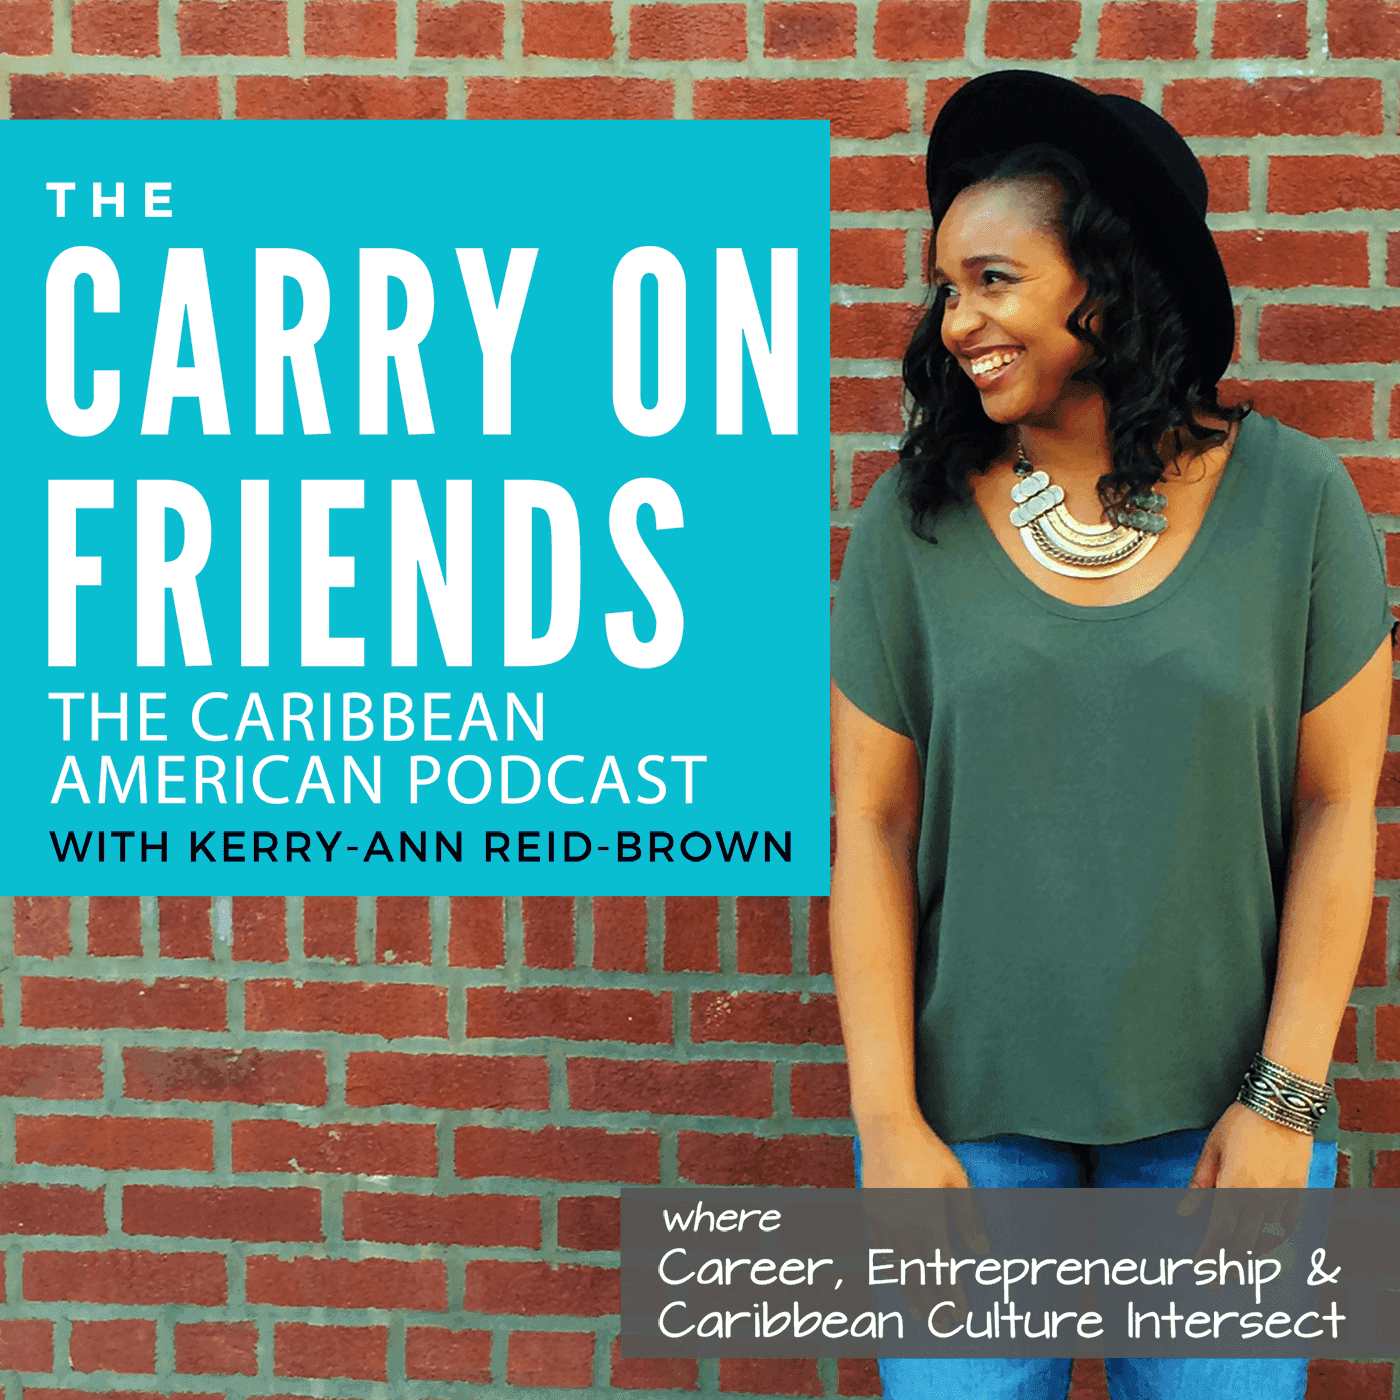 COF 114: Moving back to the Caribbean